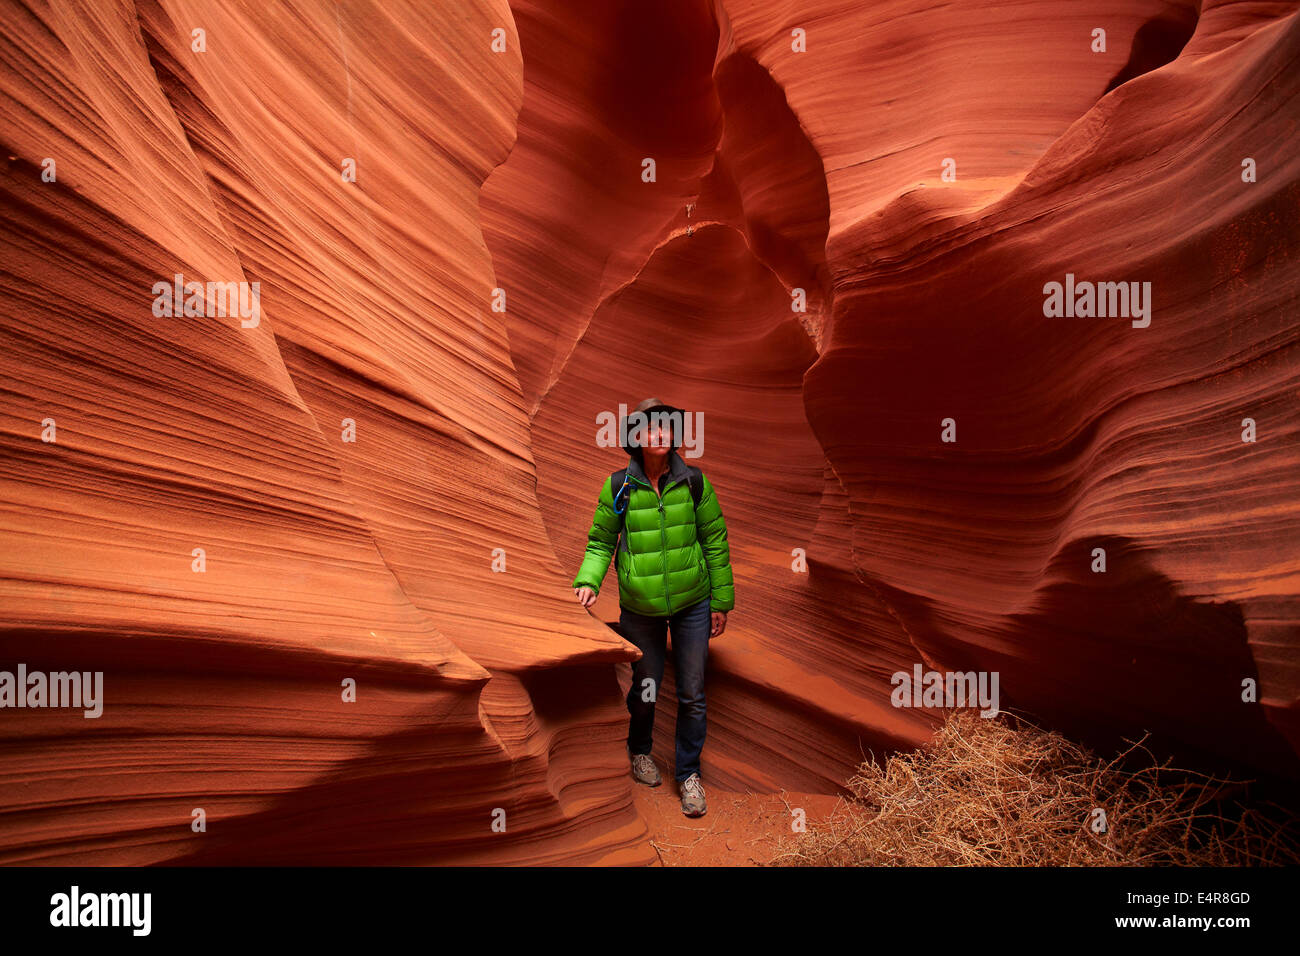 Tourist, tumbleweed, and eroded sandstone formations in Rattlesnake Canyon, near Page, Navajo Nation, Arizona, USA Stock Photo